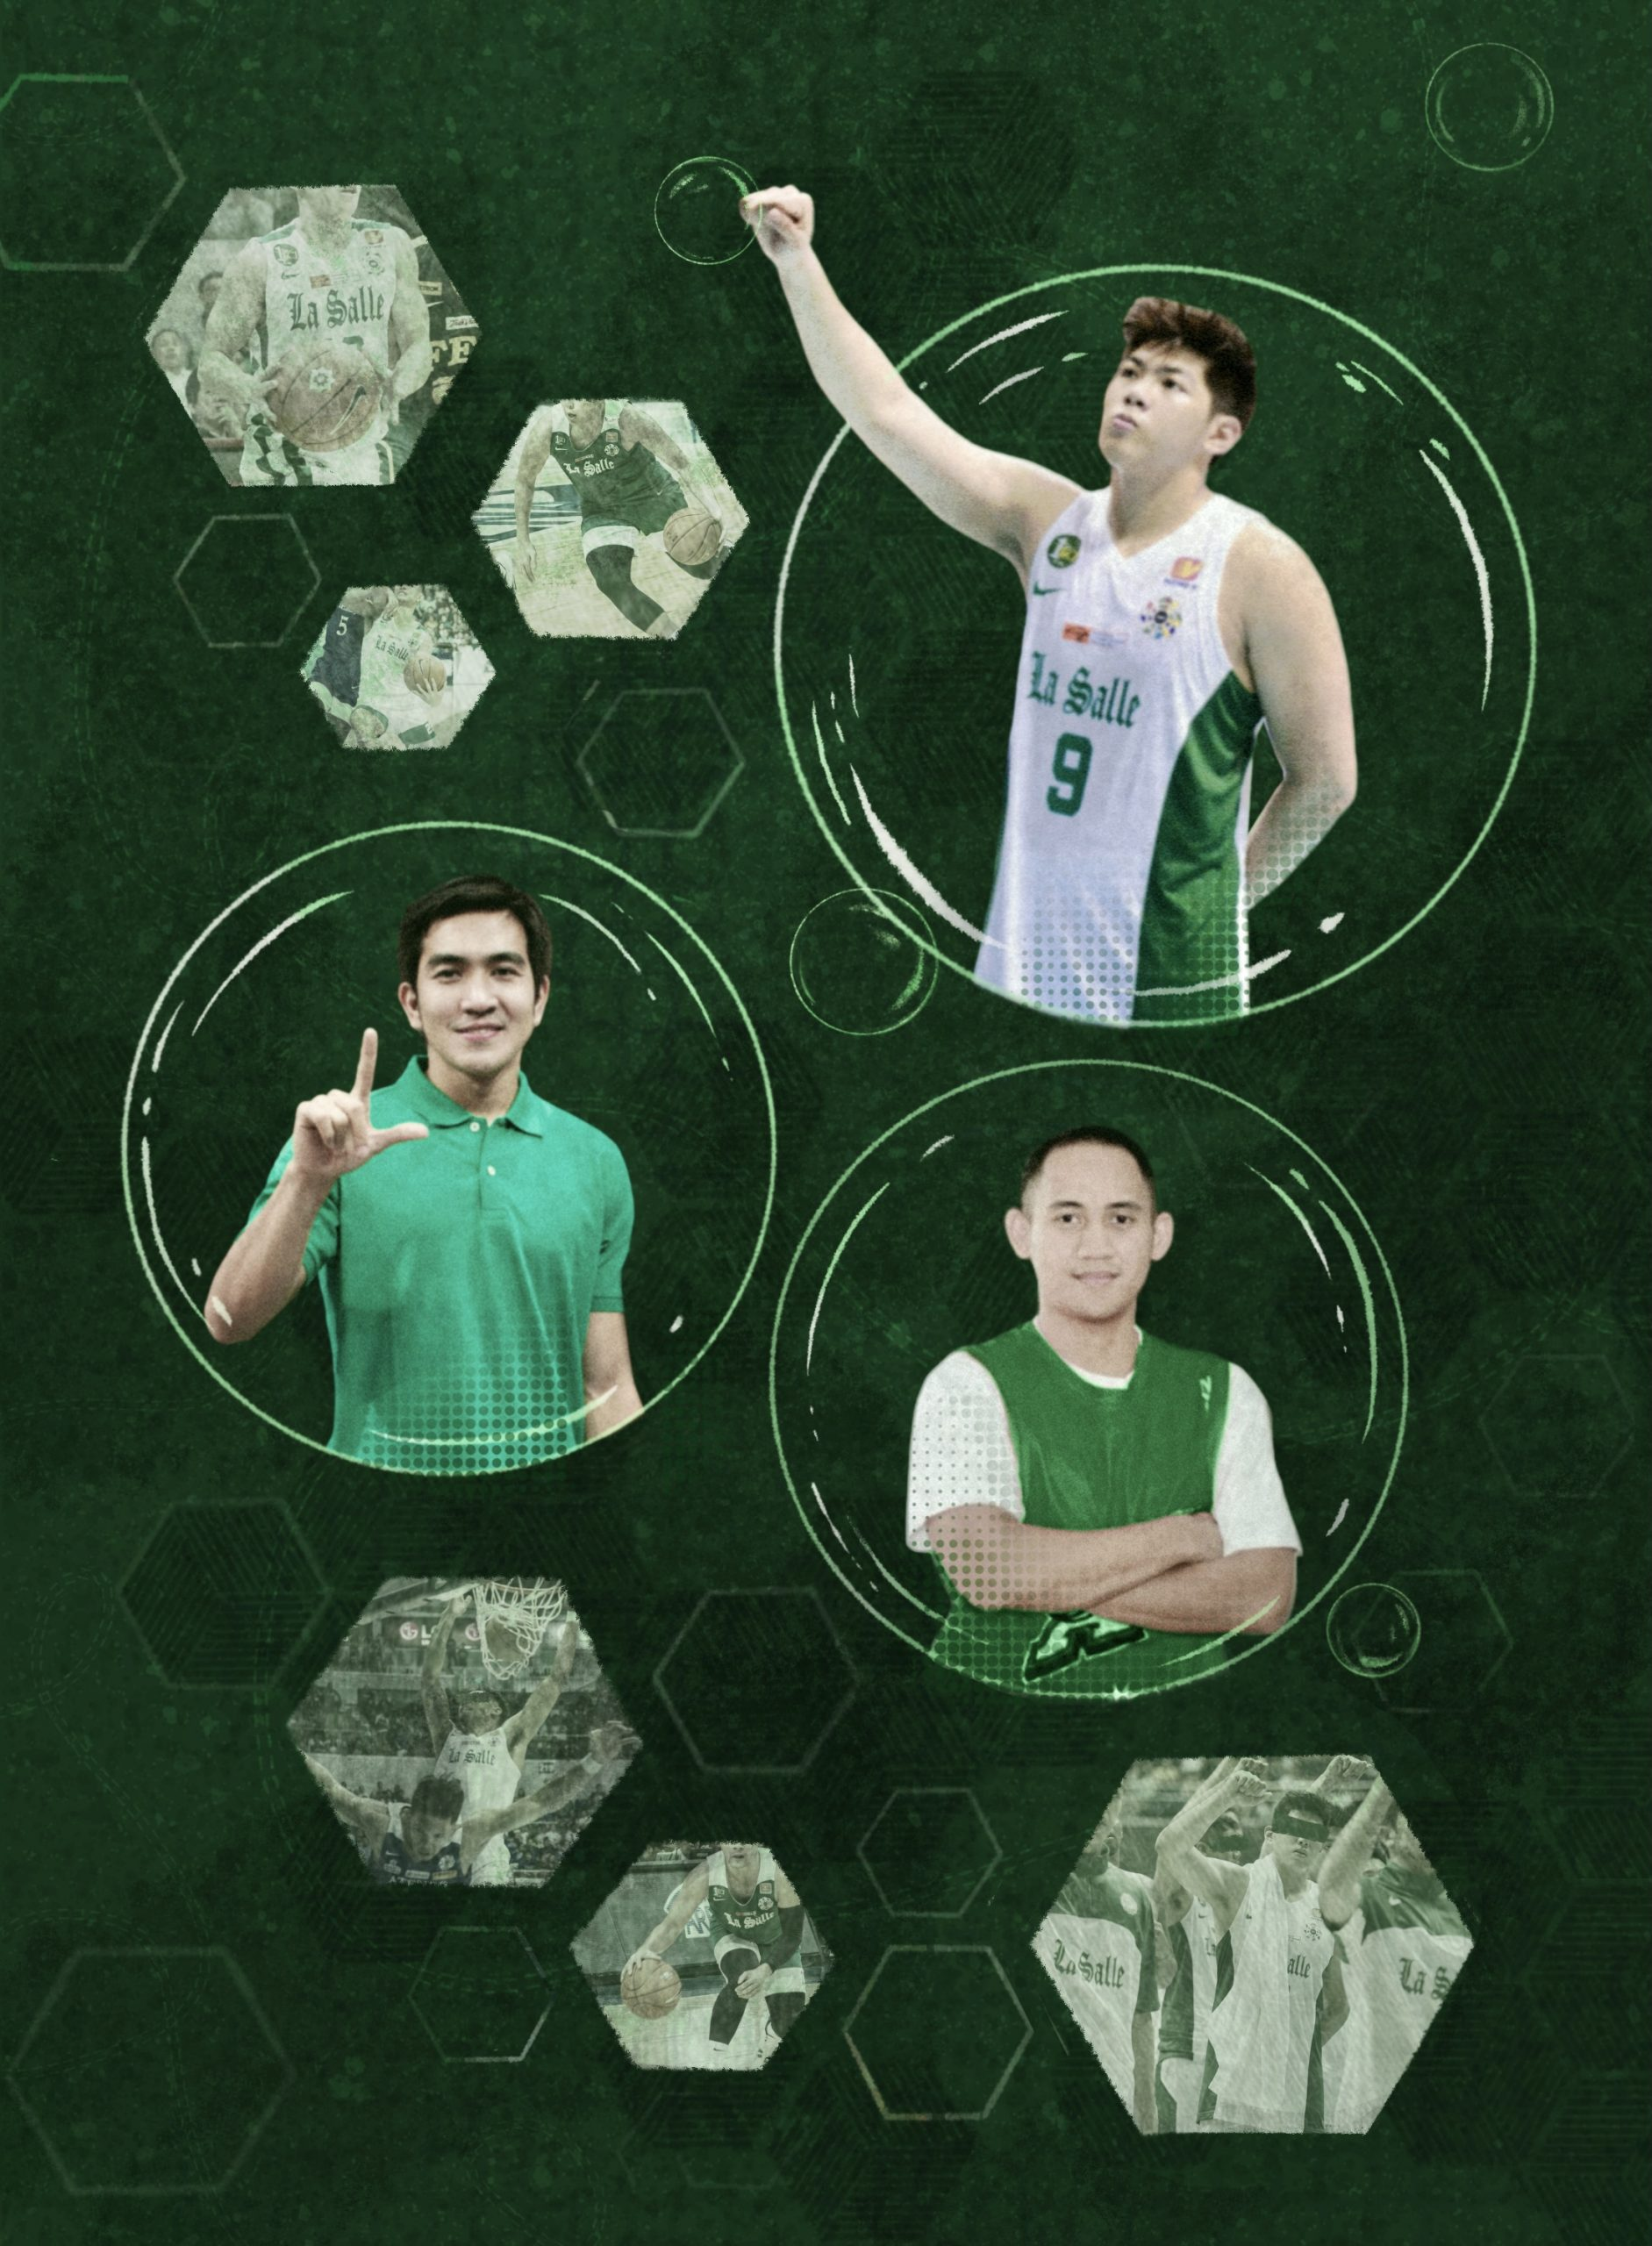 Isolation and basketball: A look inside the PBA bubble with former DLSU athletes